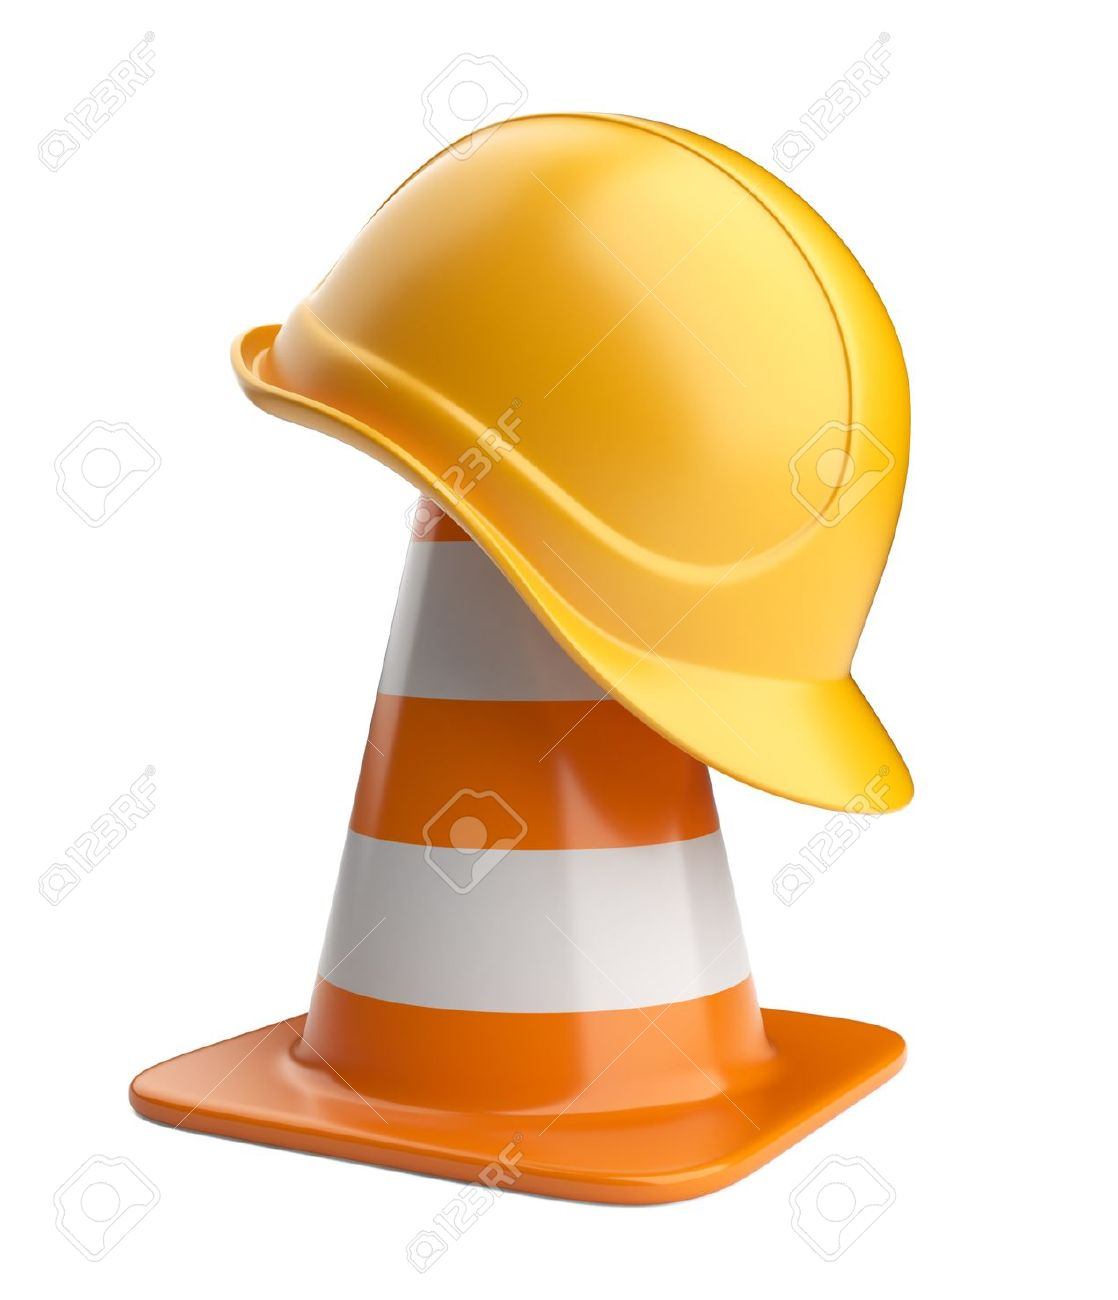 Traffic cones and hardhat Road sign Icon isolated on white background - 13168289